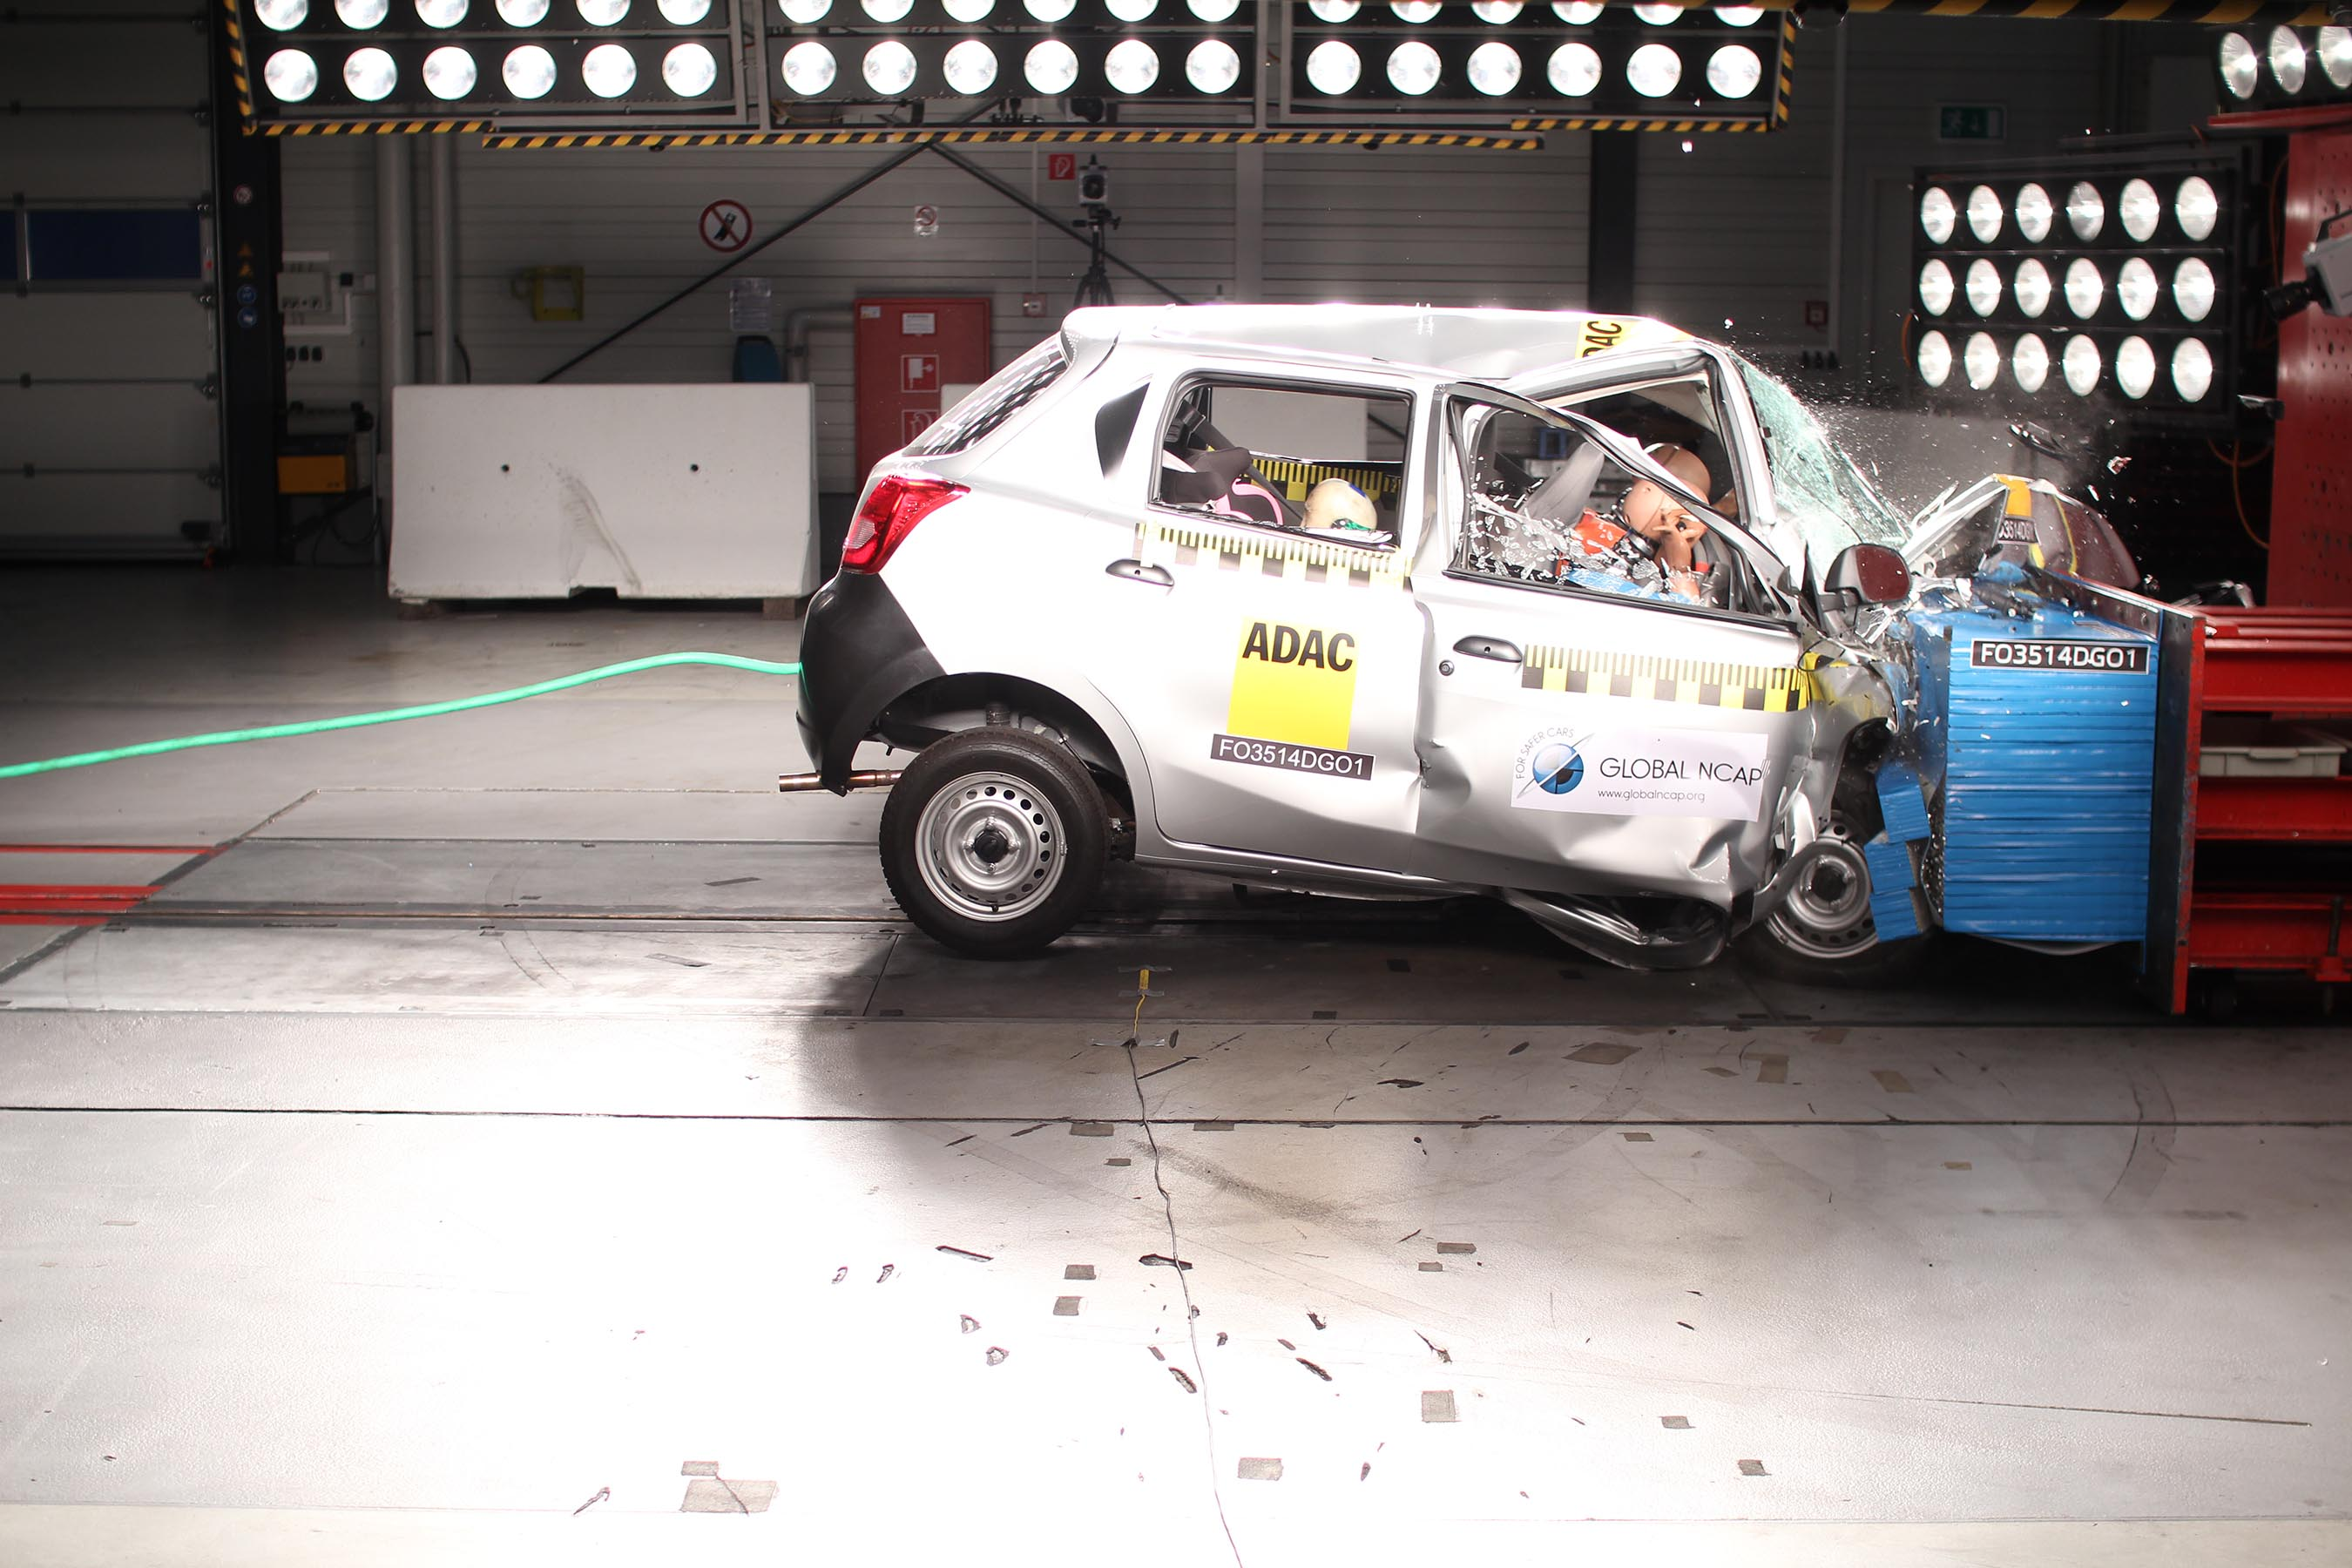 Global NCAP calls for urgent withdrawal of Datsun Go  Global NCAP